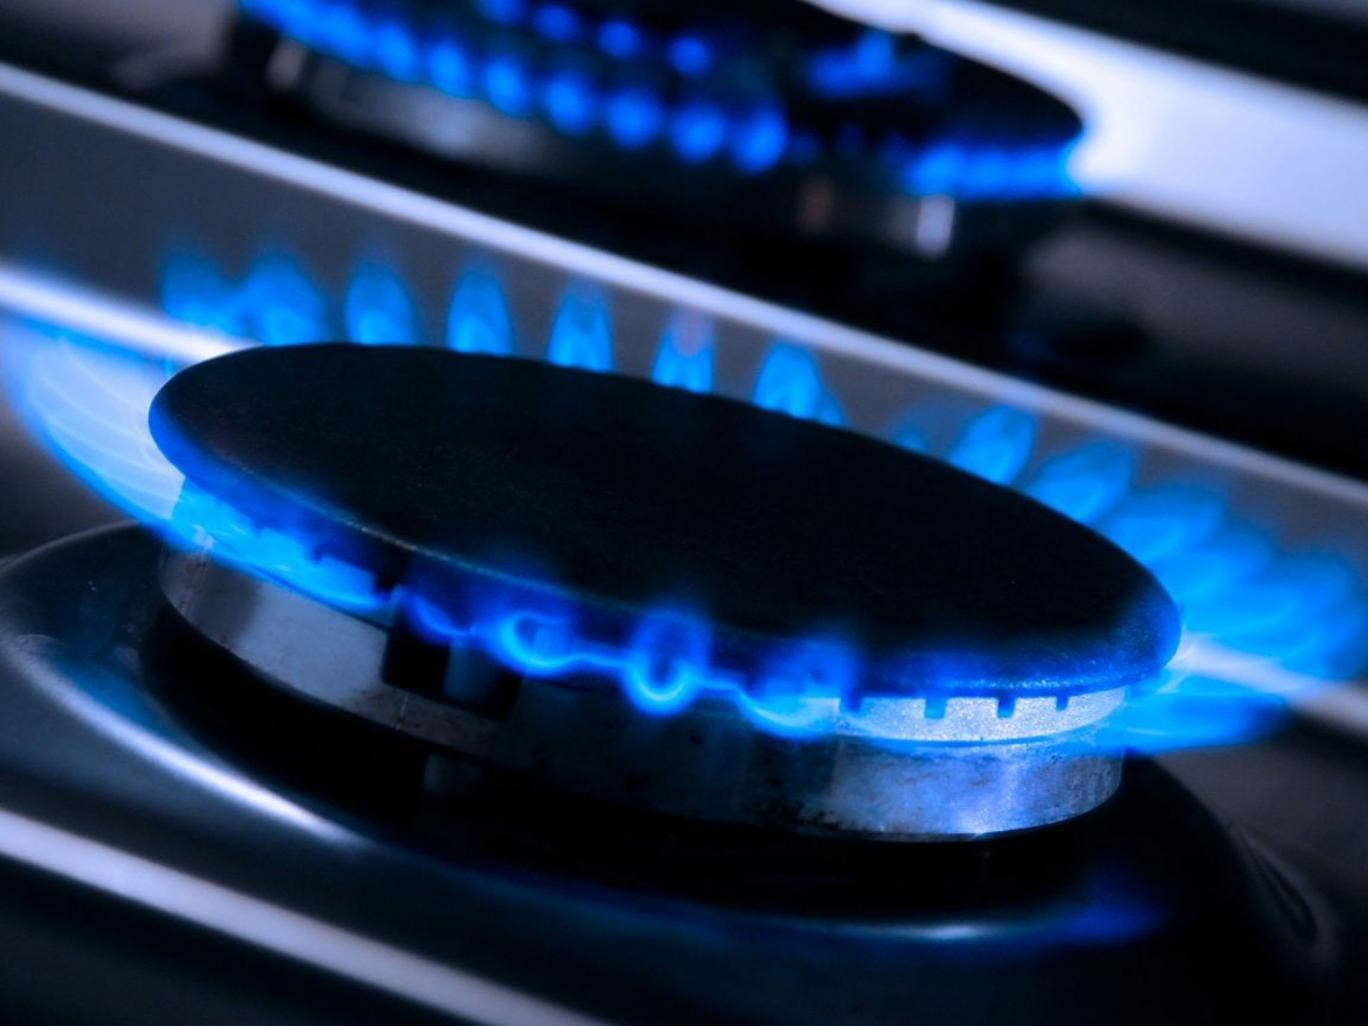 British Gas's latest price rise will add an average £80 a year to the cost of heating for 9 million households